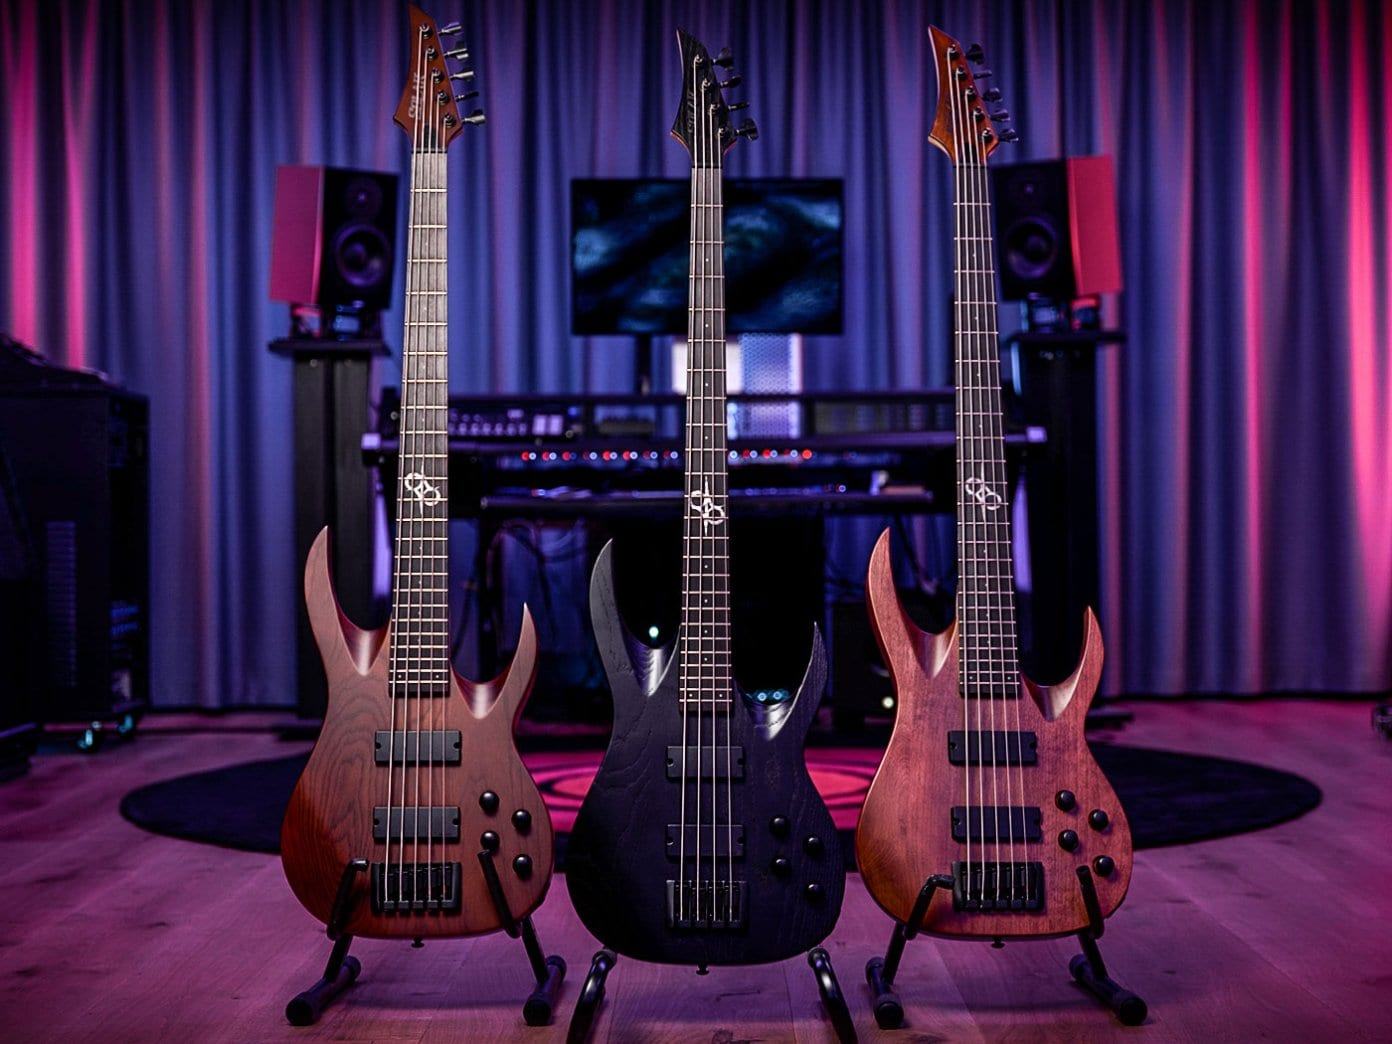 Solar Guitars has just launched their first AB2 series basses